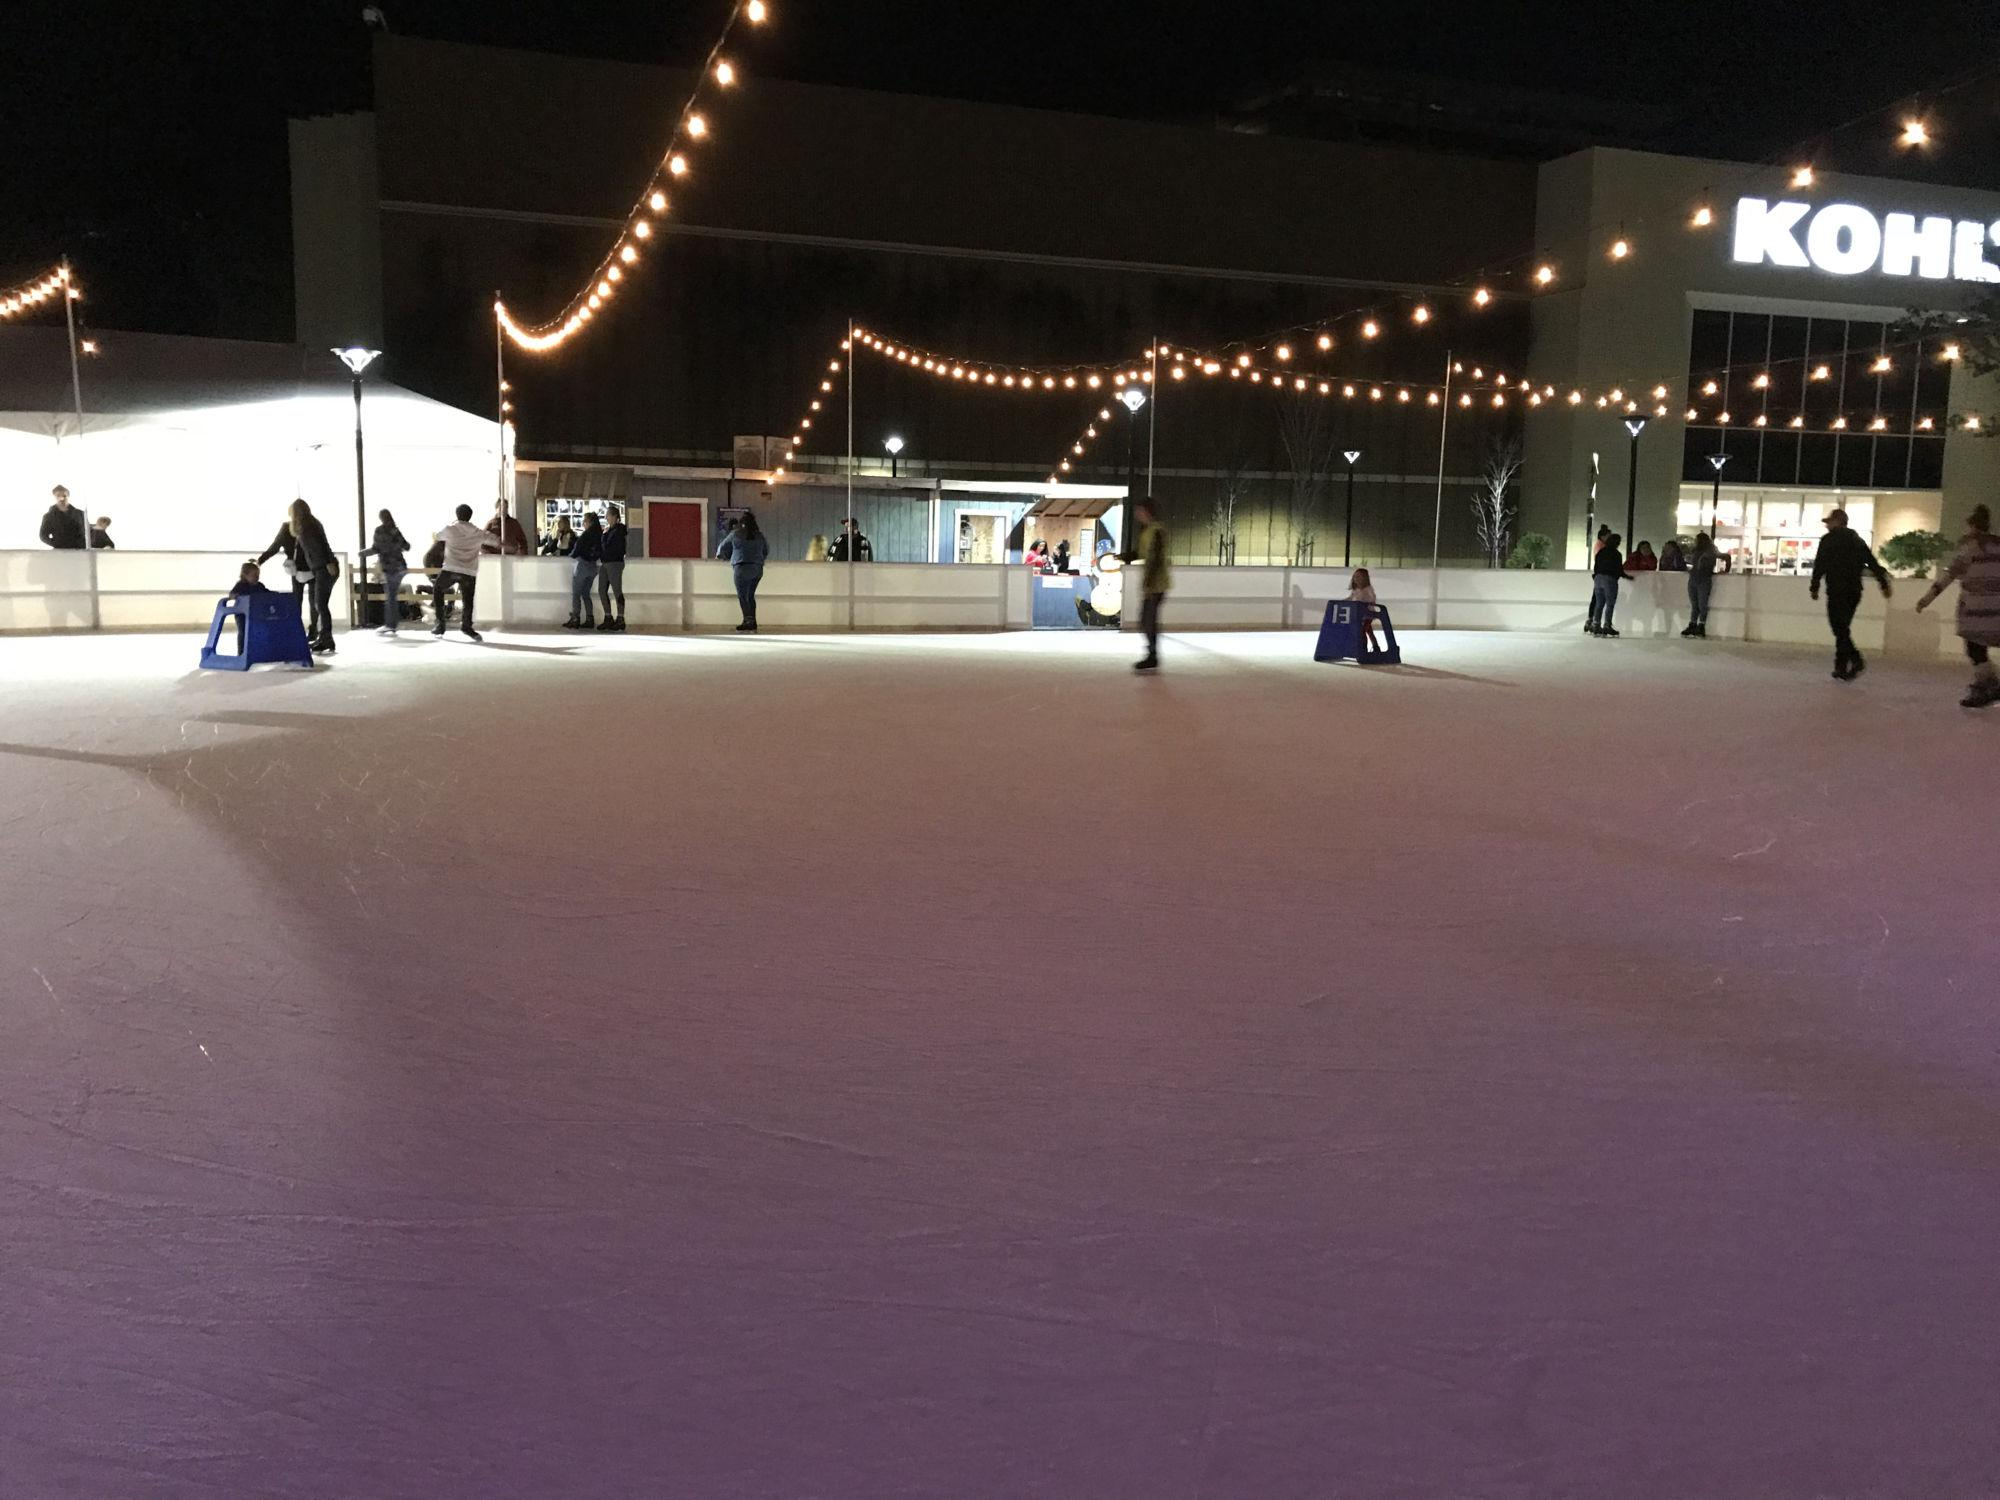 The nearly empty rink provided lots of room for skaters.